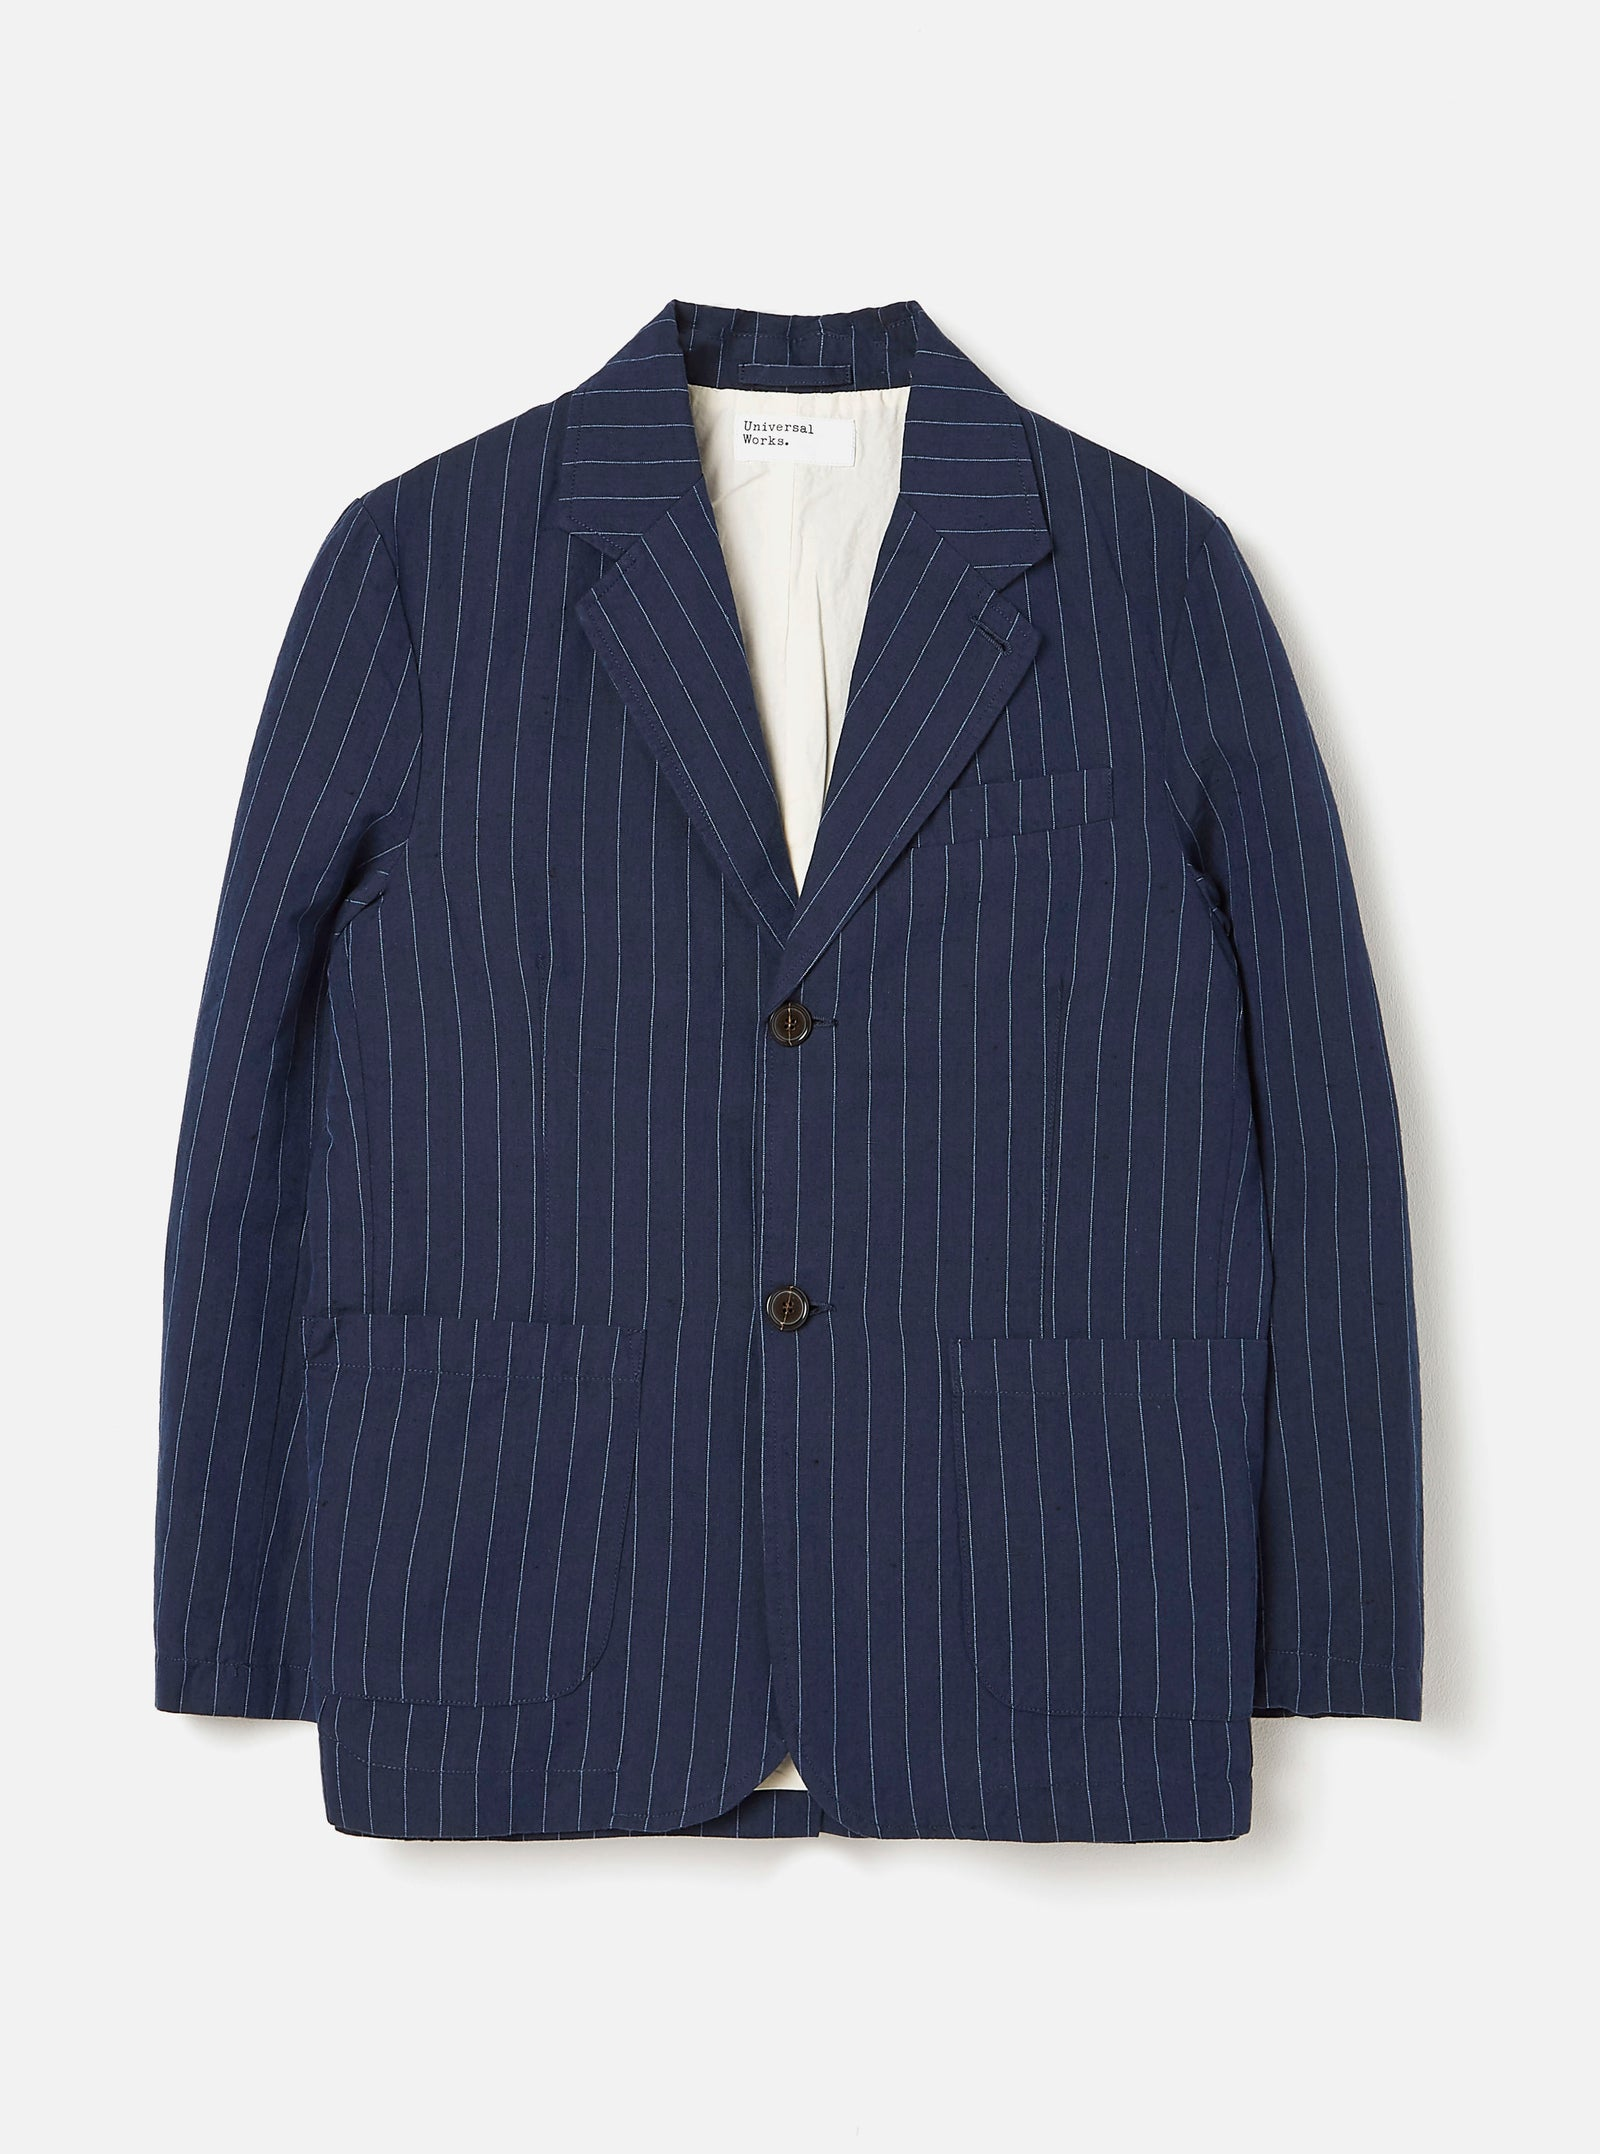 Universal Works Two Button Jacket in Navy Linen Cotton Stripe